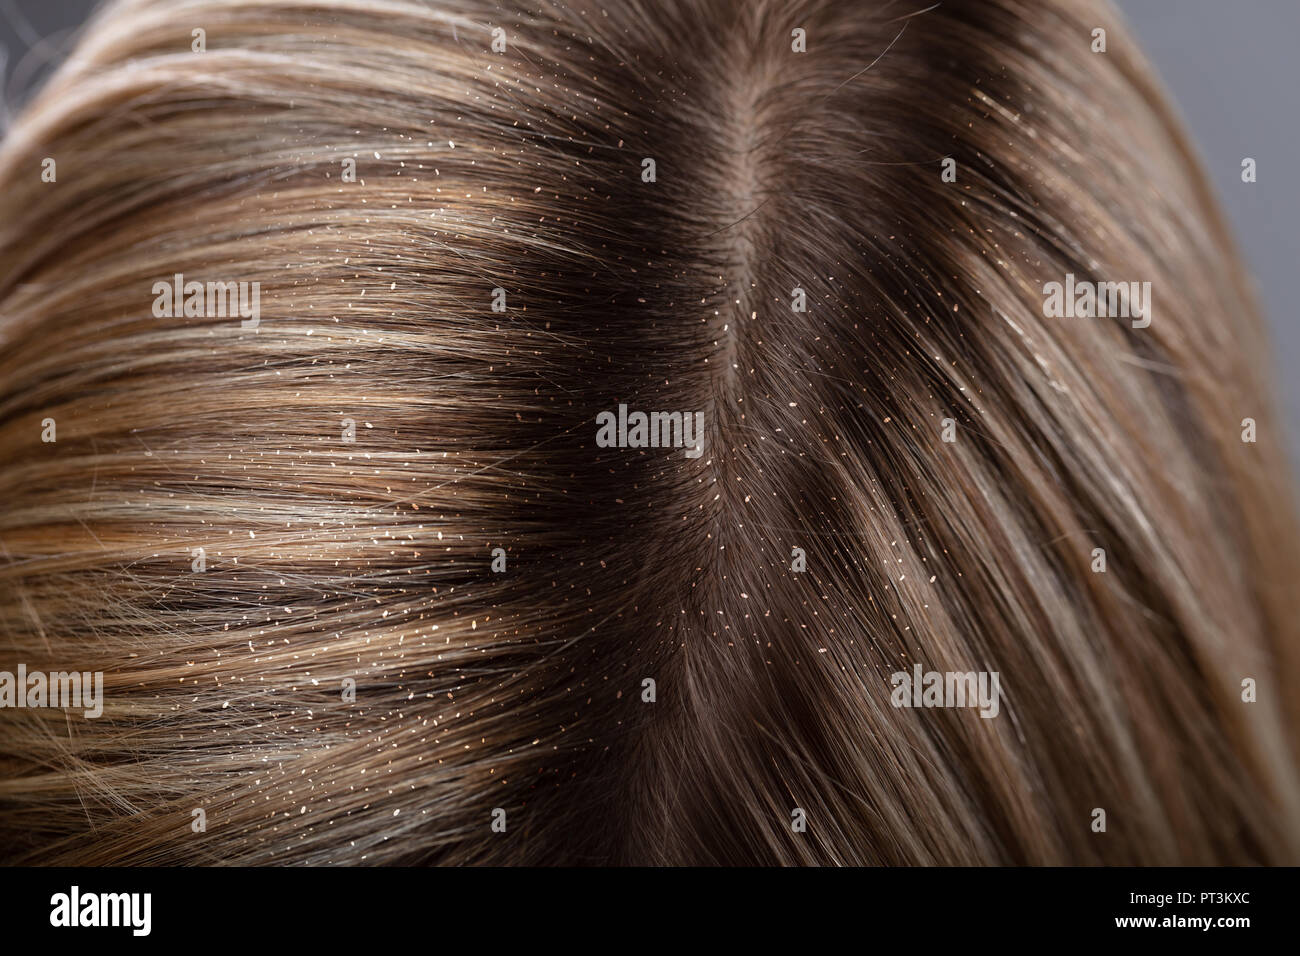 Close-up Of A Dandruff In Woman's Blonde Hair - Stock Image